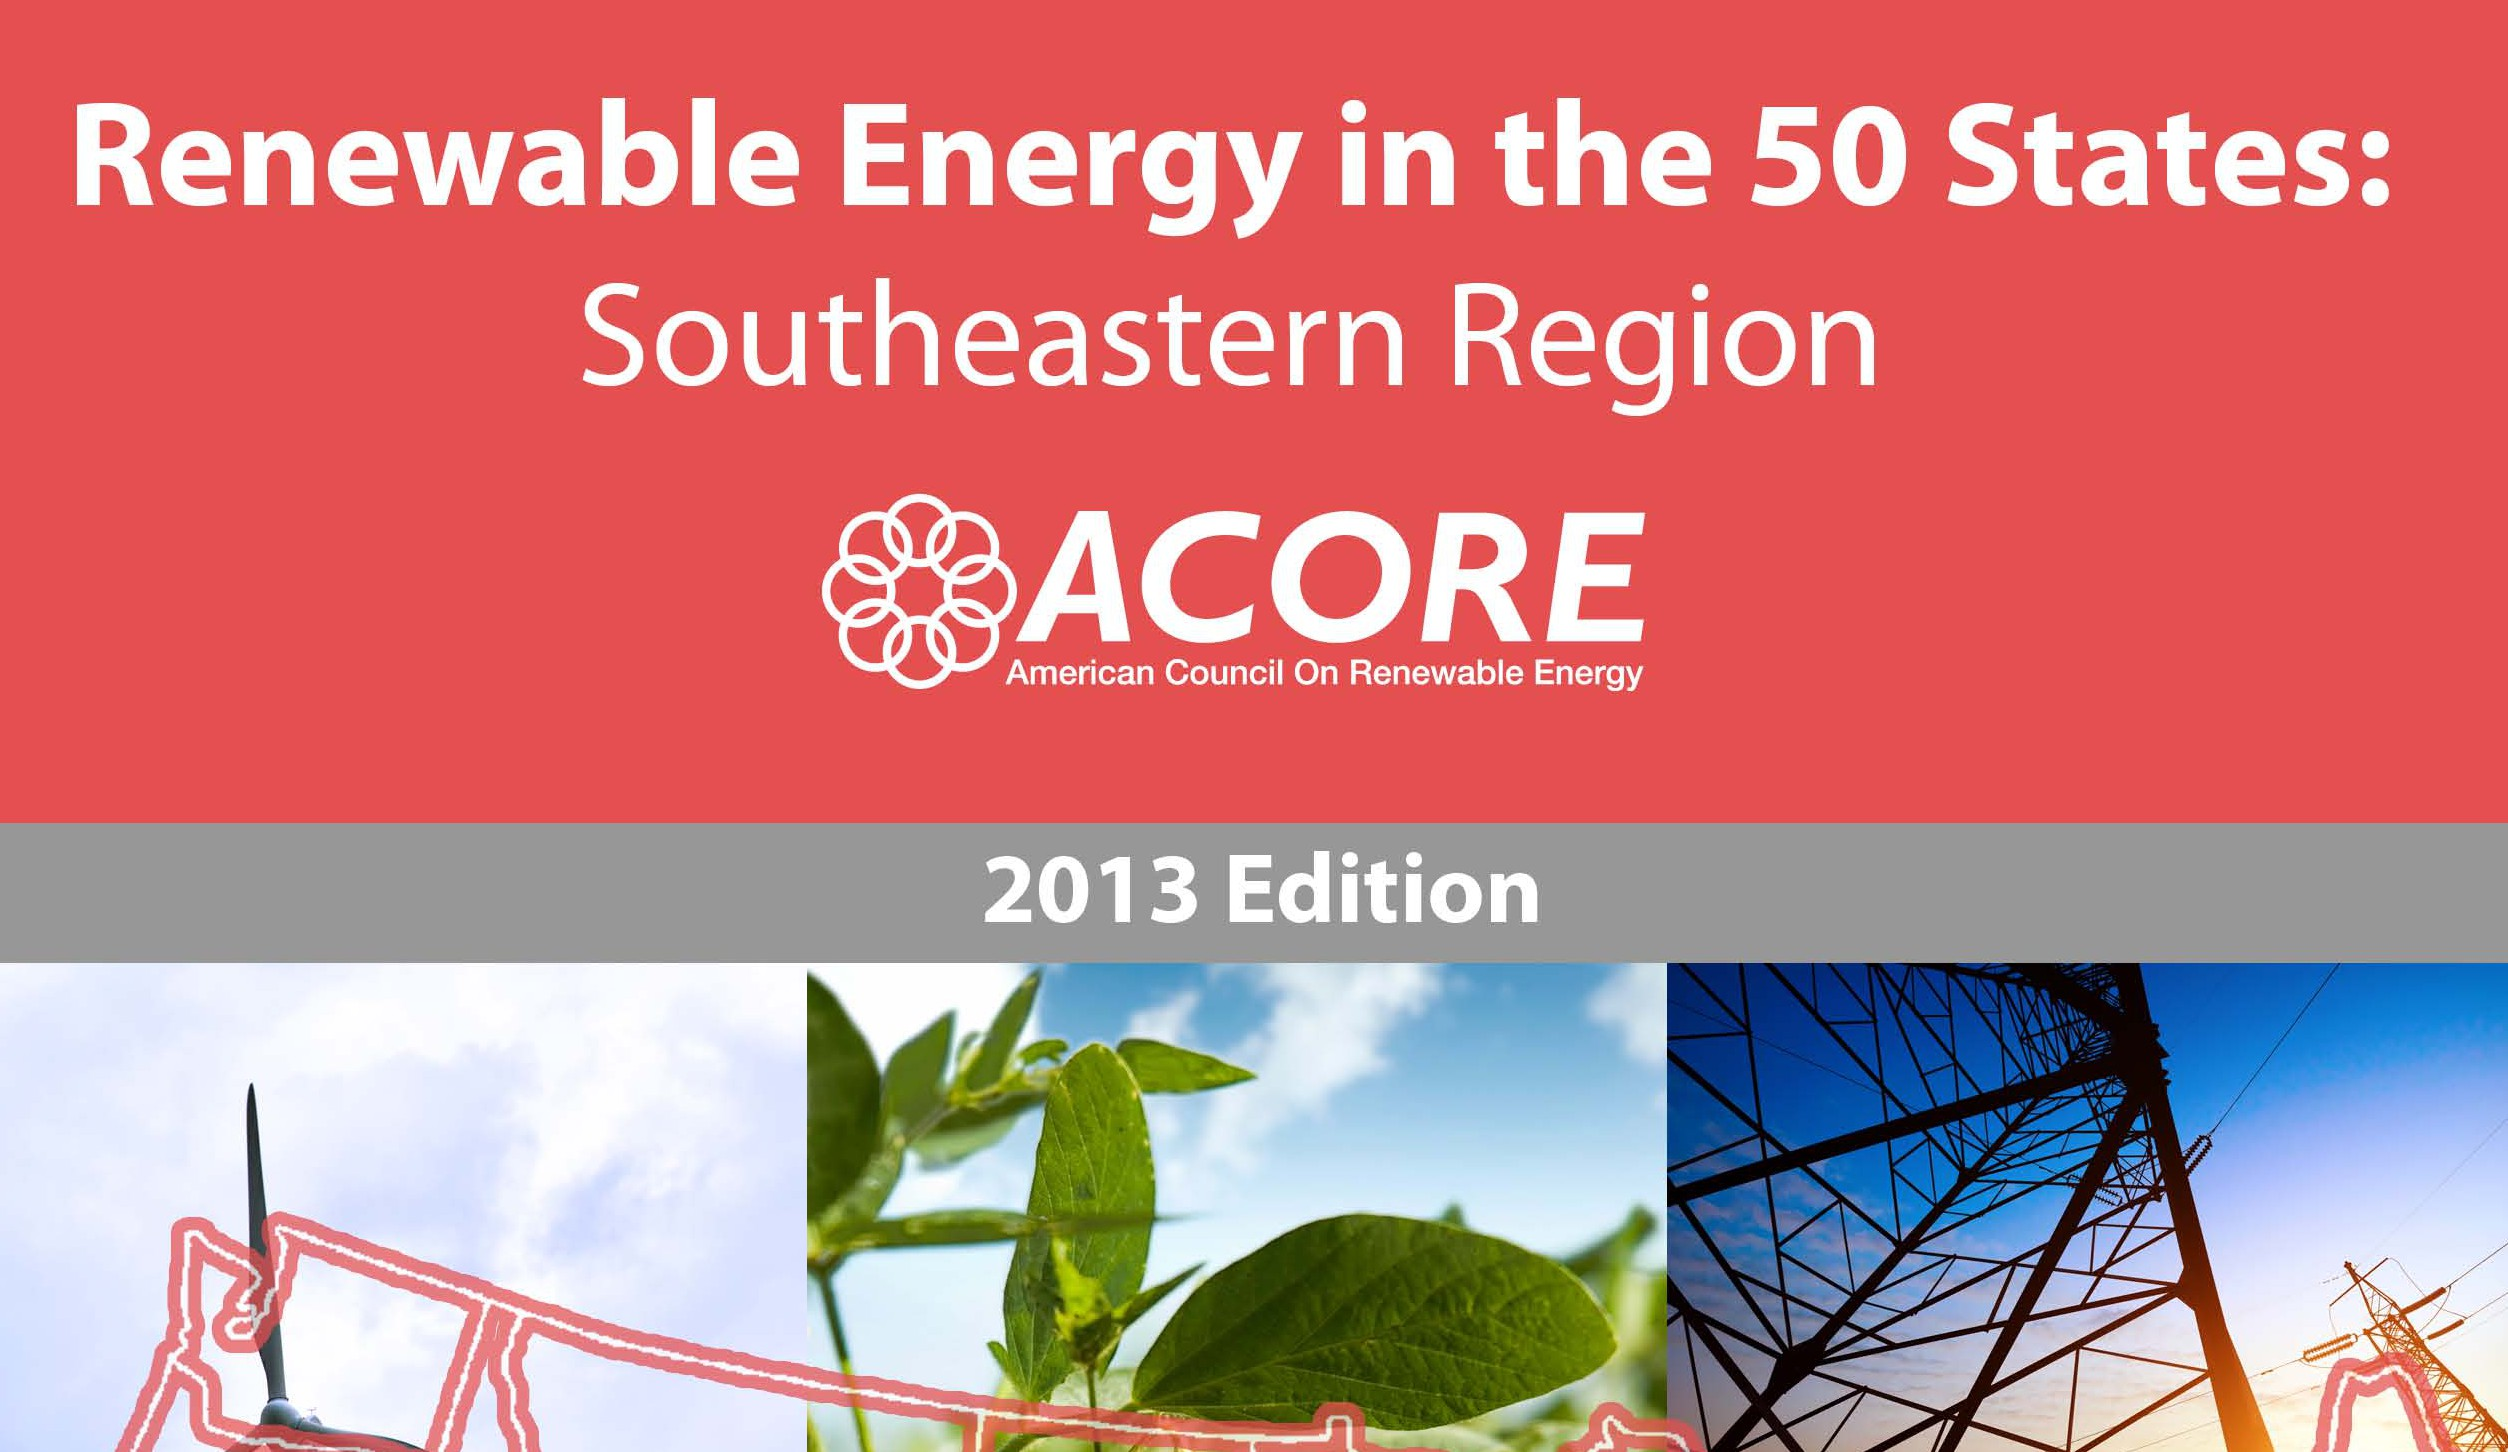 New Report from ACORE: Renewable Energy in 50 states